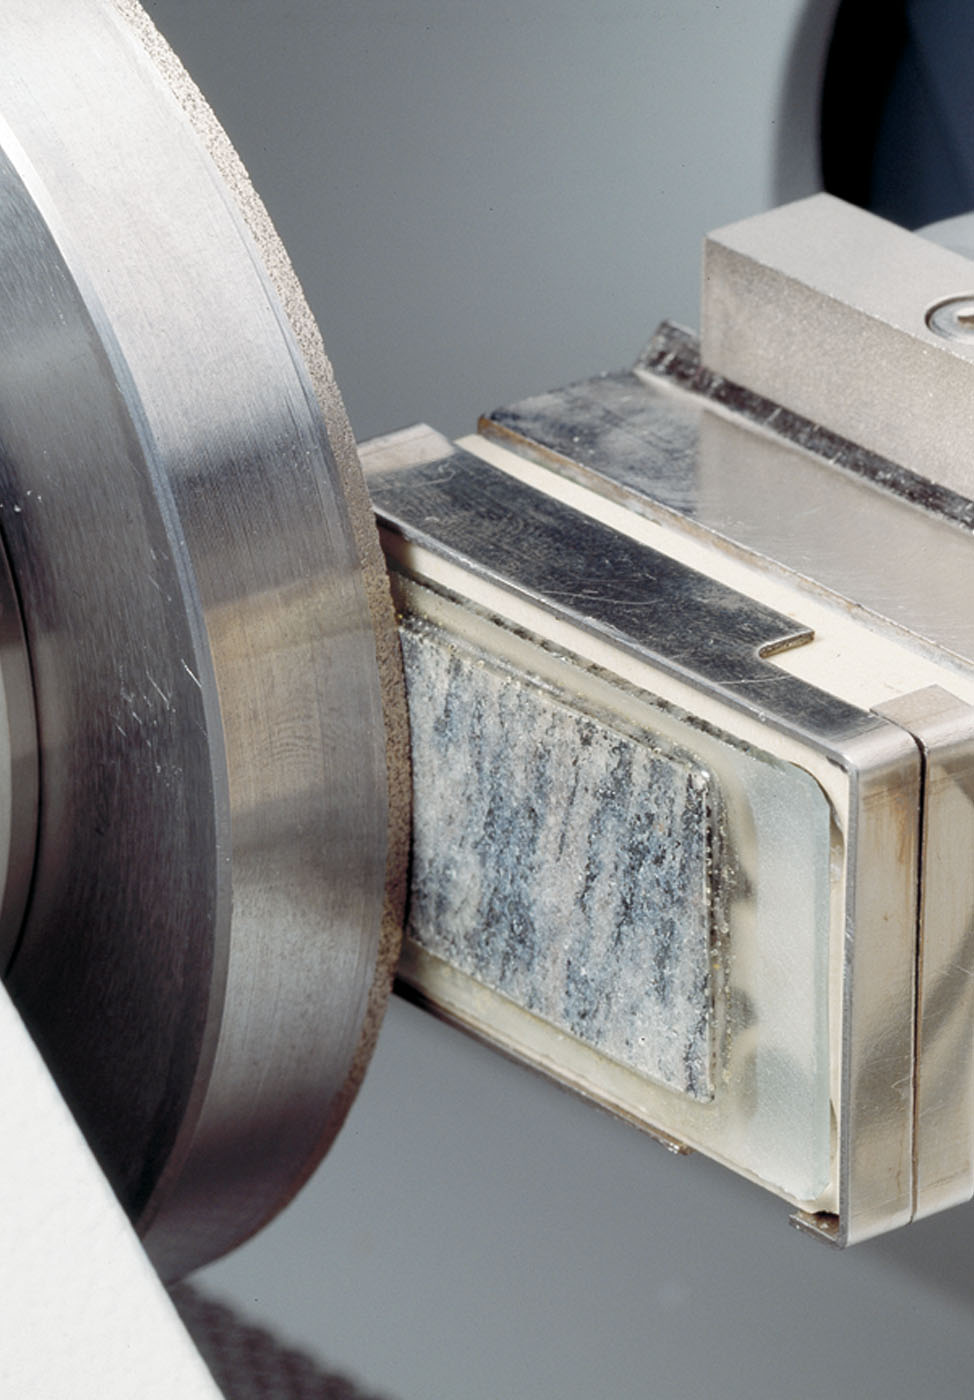 Grinding of thin sections